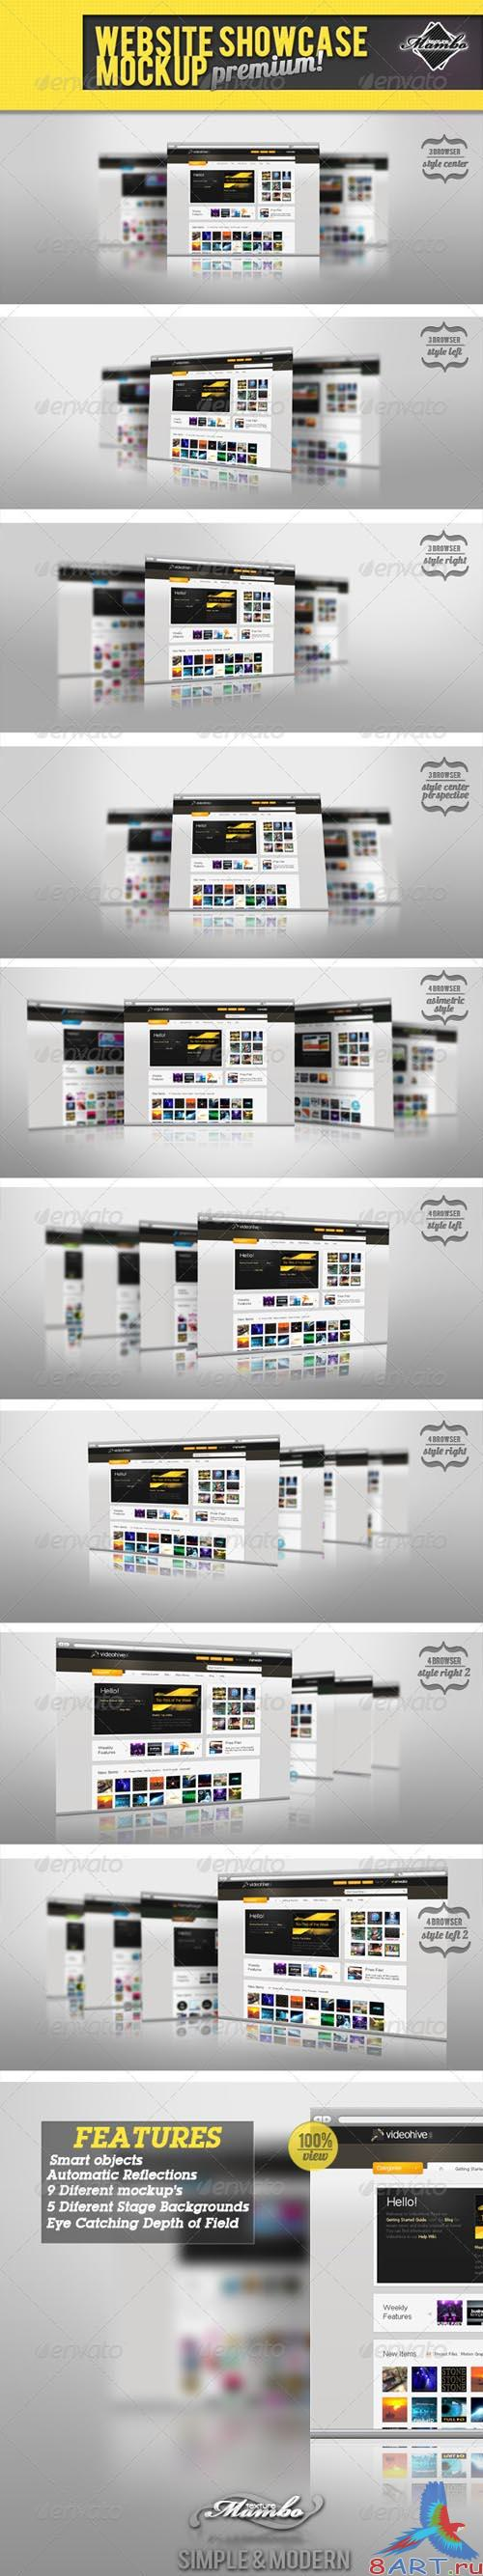 GraphicRiver Website Showcase Mockup - REUPLOAD